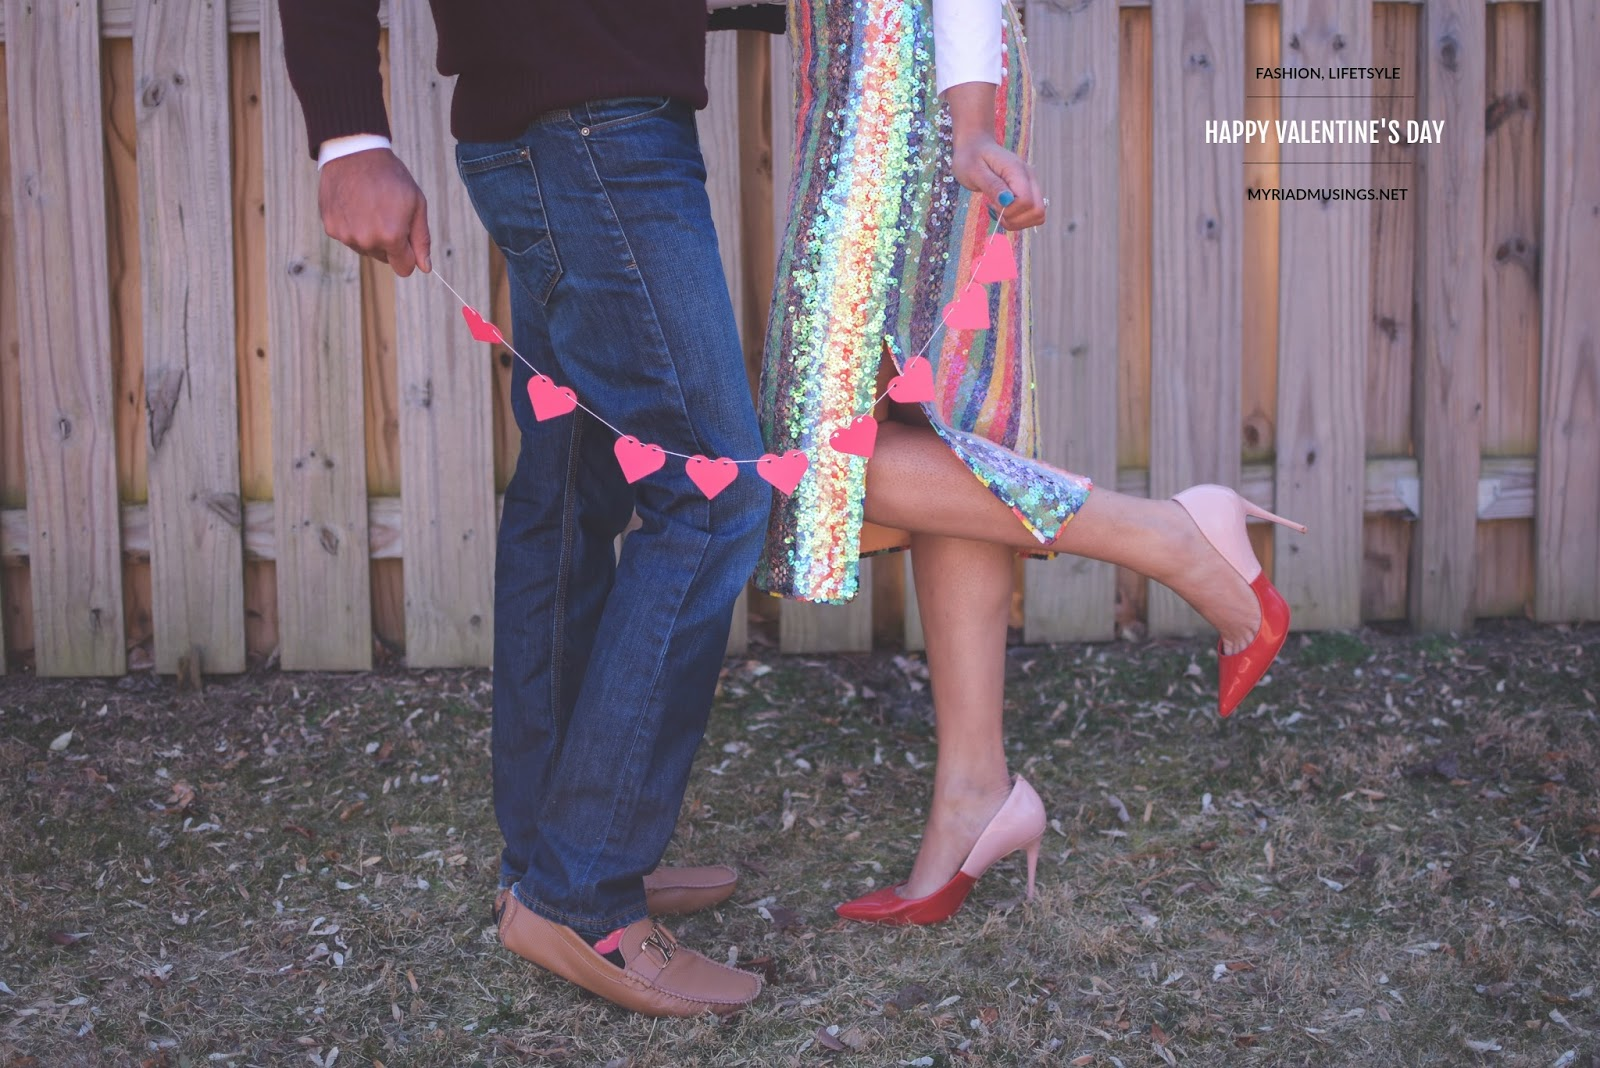 valentines day wityh family, valentines after 30, valentines with kid, valentines day family photoshoot, outdoor photoshoot, valentines day outfit, family pic, sequin skirt, pink tulle skirt outfit, fashion, lifestyle, plated food, the bouqs flower